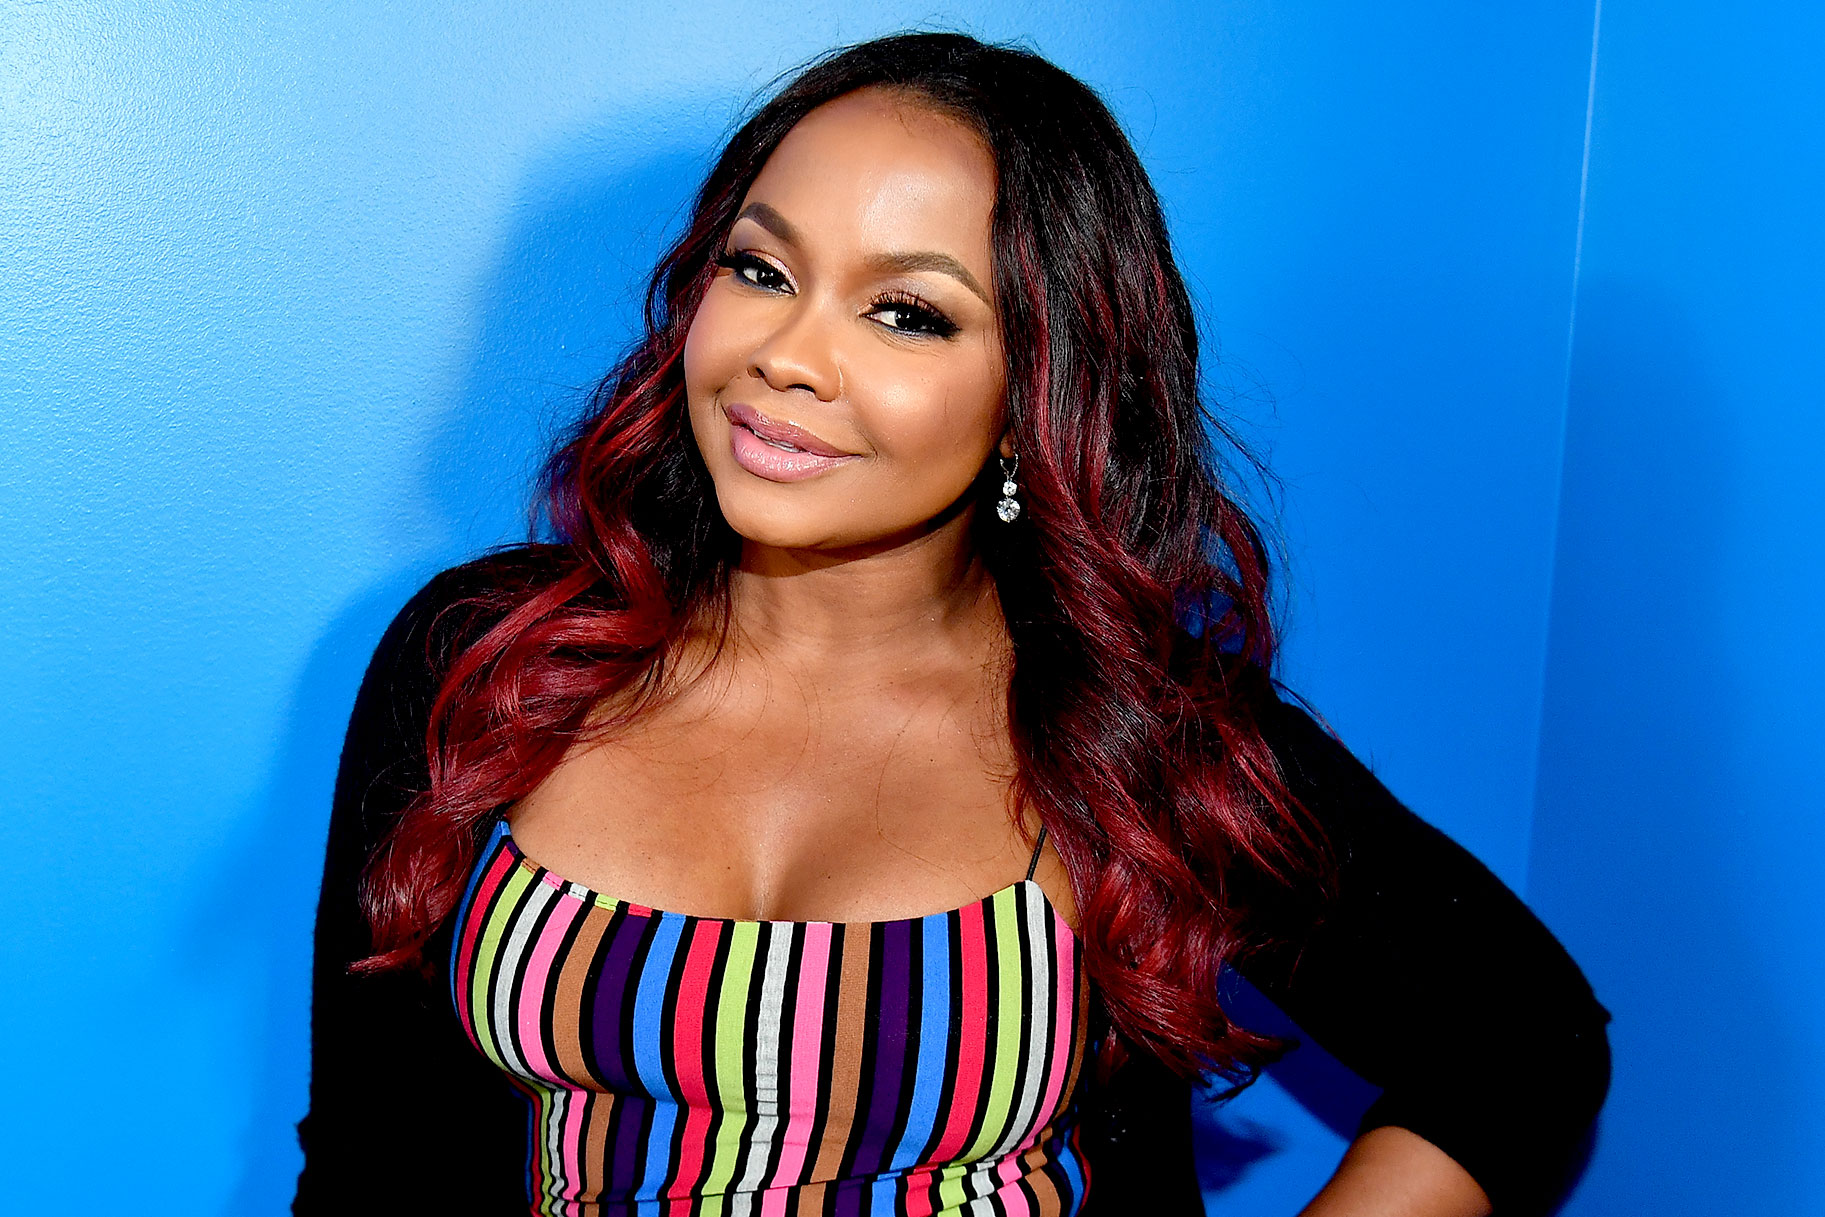 Phaedra Parks wears cheetah cut-out swimsuit